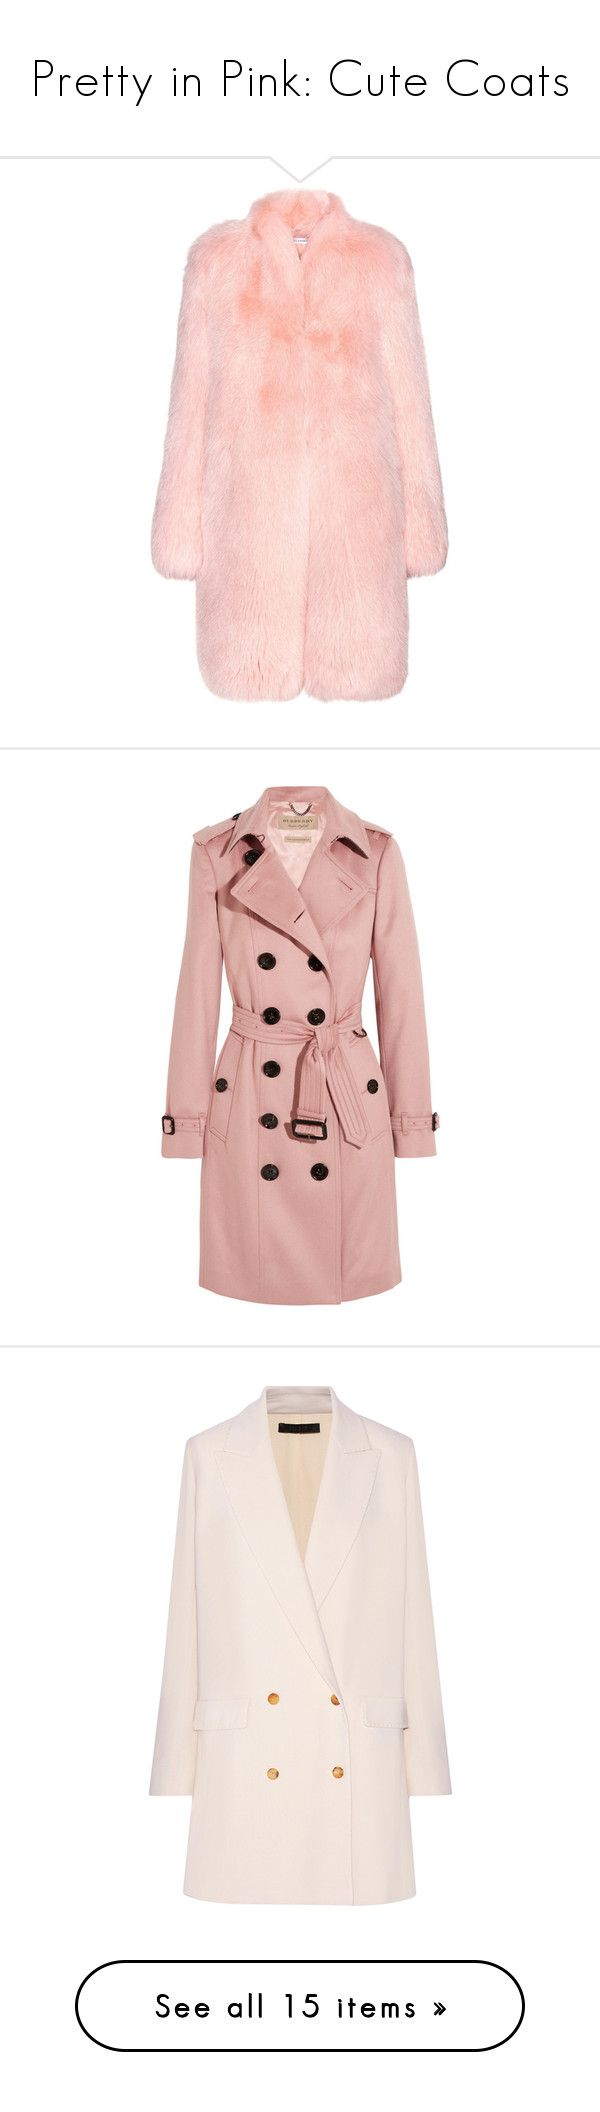 """Pretty in Pink: Cute Coats"" by polyvore-editorial ❤ liked on Polyvore featuring pinkcoats, outerwear, coats, jackets, fur, pink, fox fur coat, light pink coat, pink coat and altuzarra"